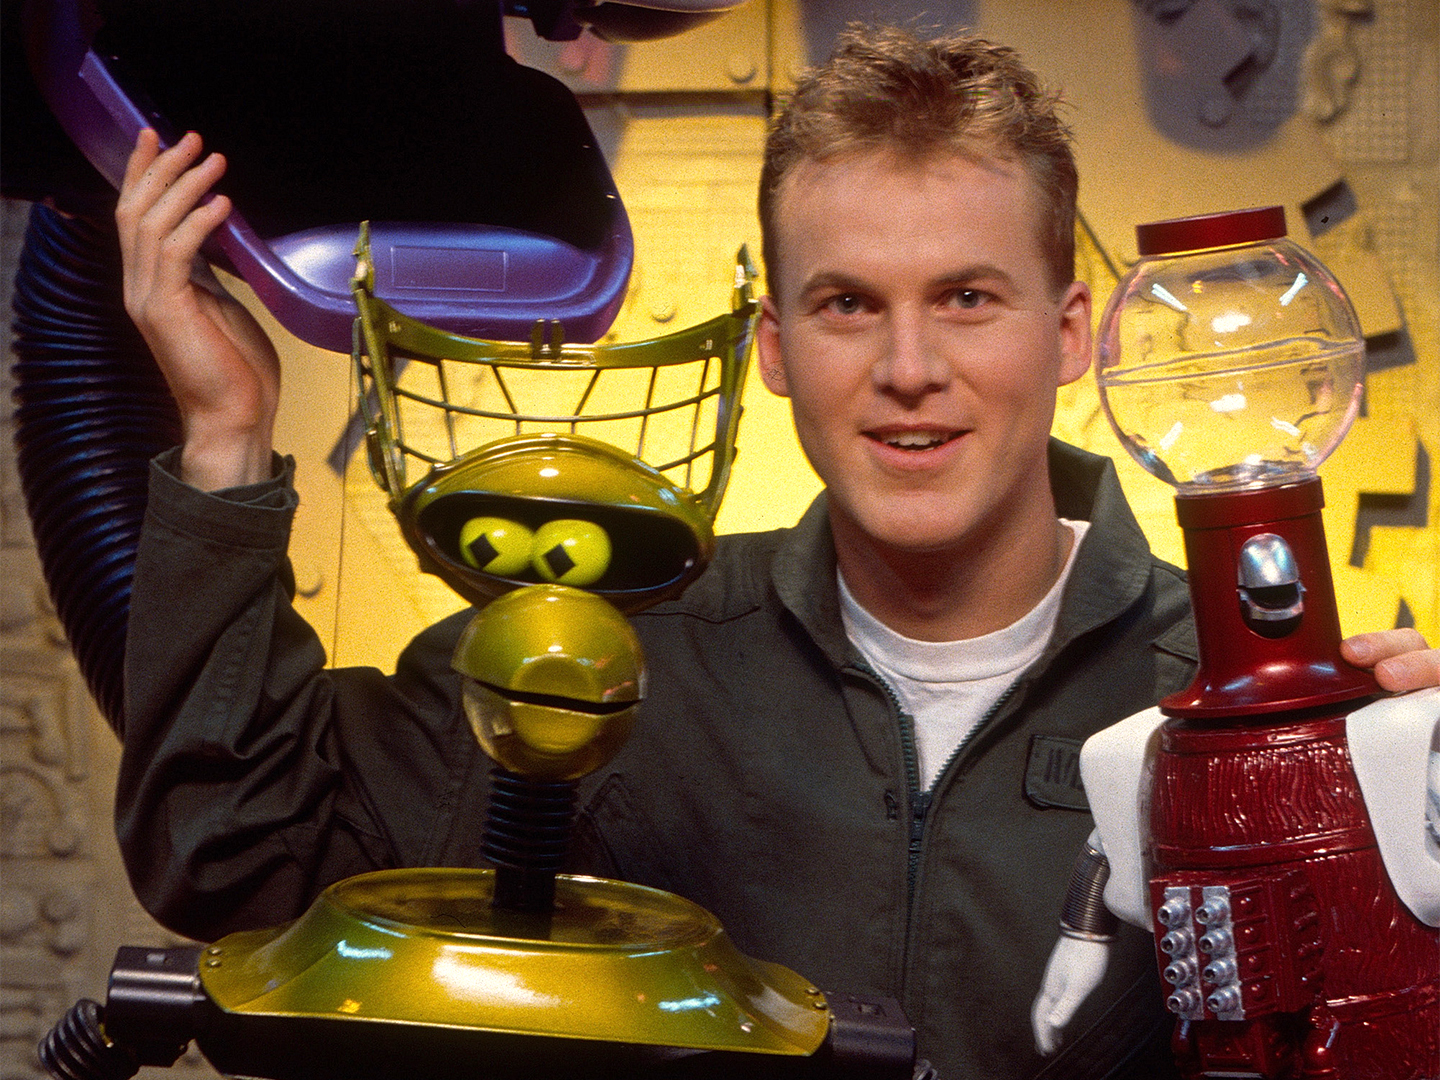 Image result for mystery science theater 3000 mike nelson